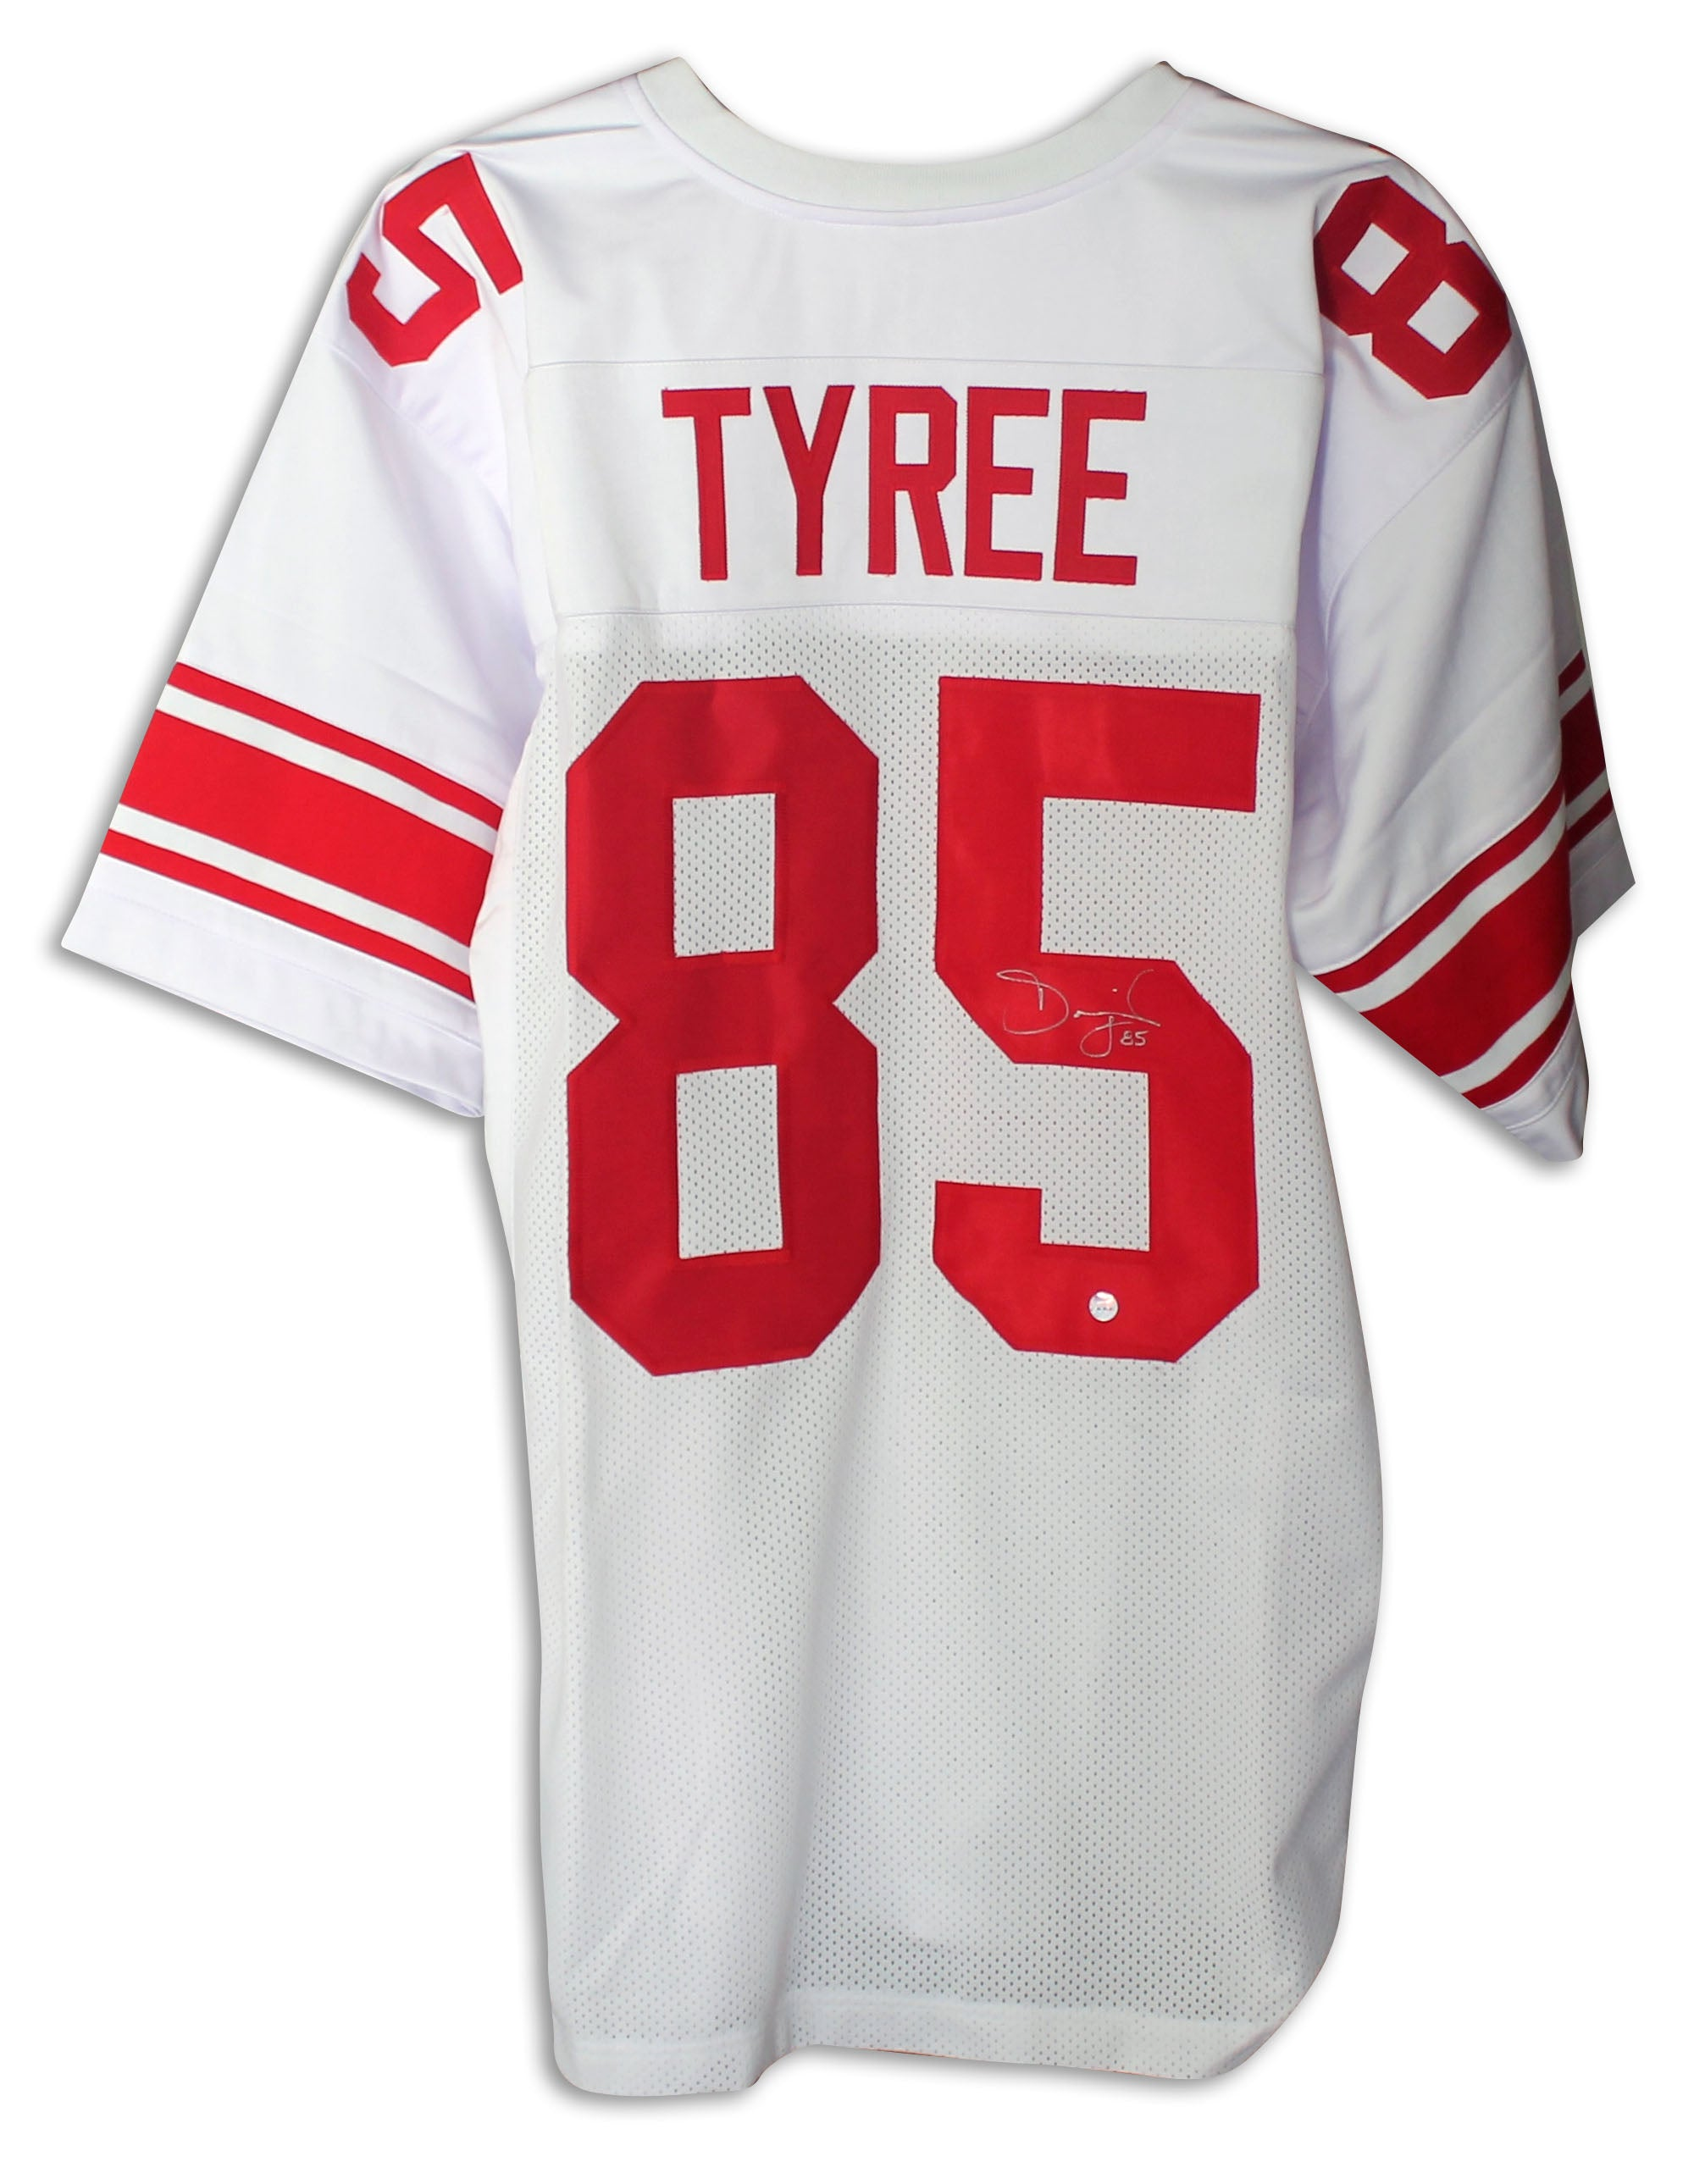 David Tyree New York Giants Autographed White Jersey PSM-Powers Sports Memorabilia